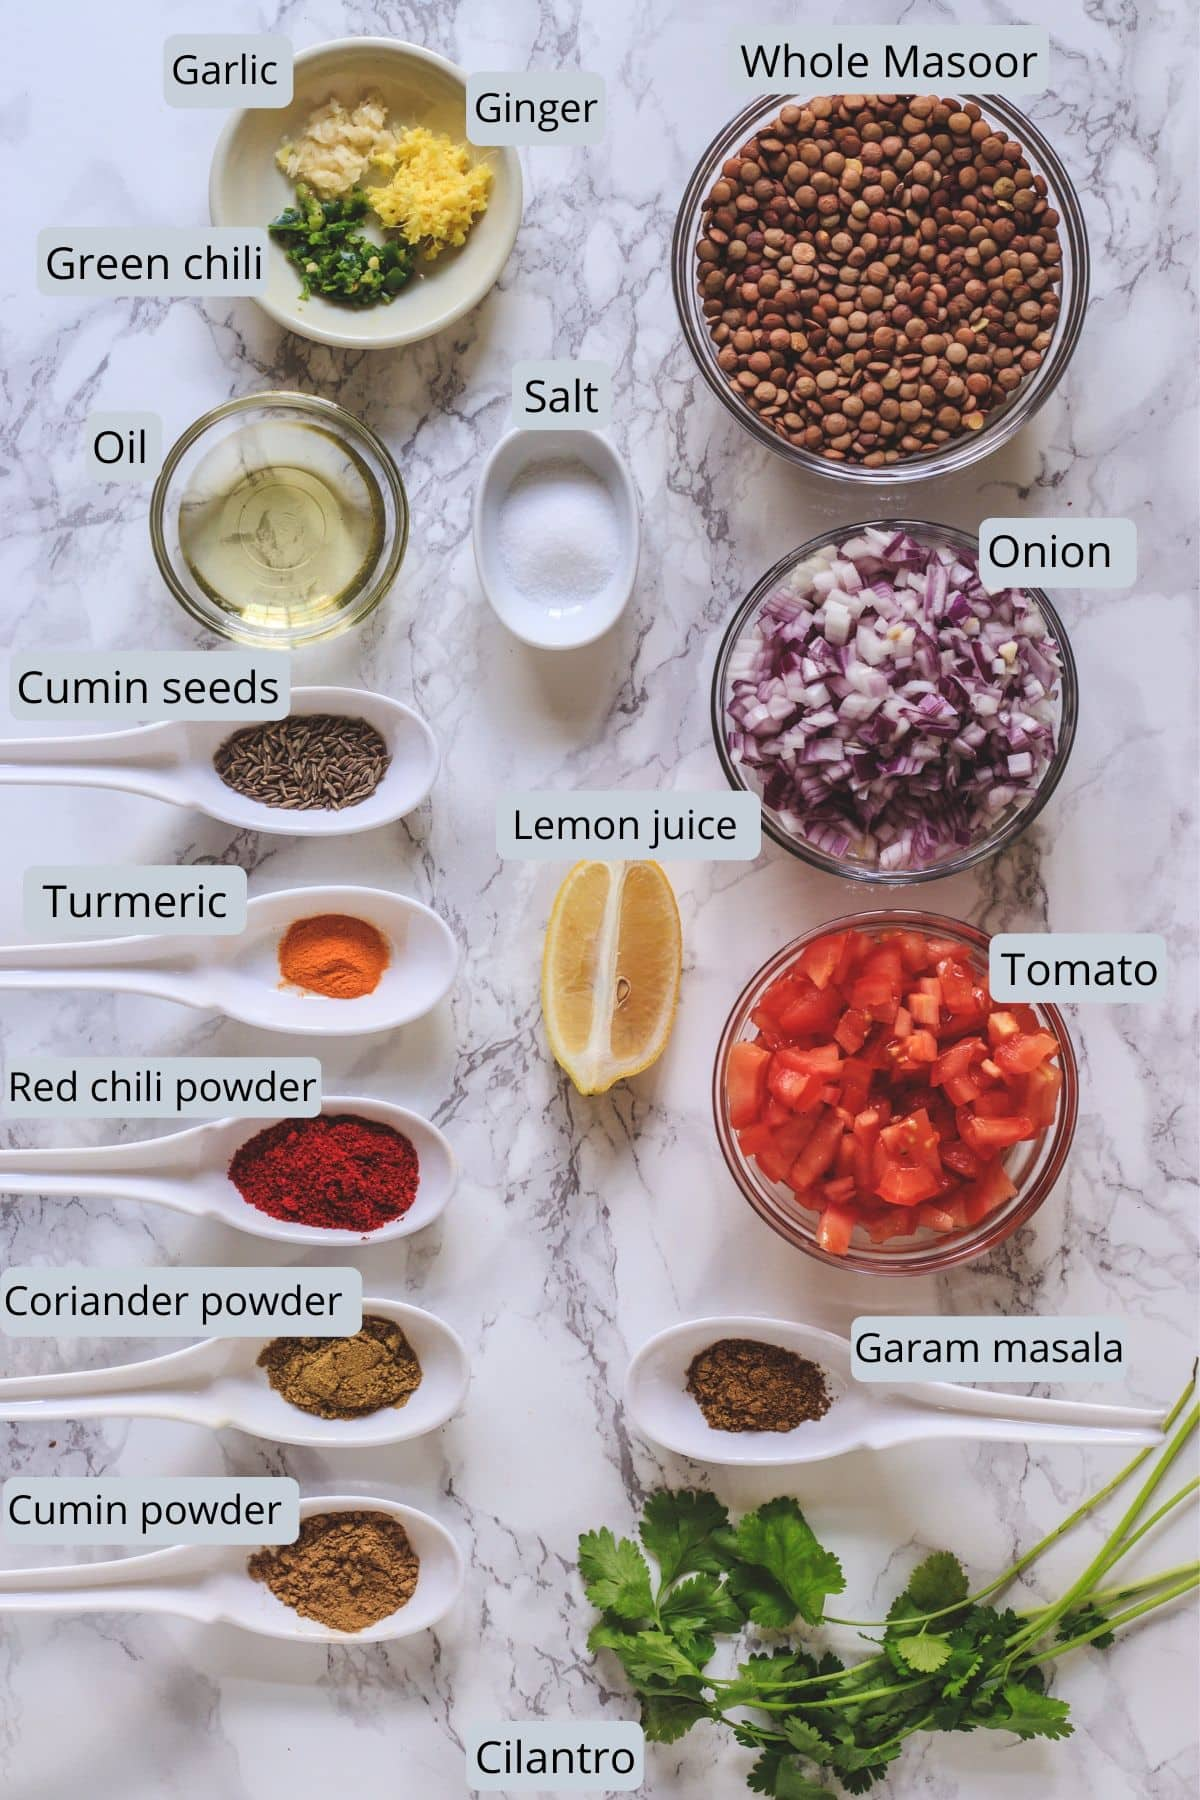 Whole masoor dal recipe ingredients laid down on marble surface